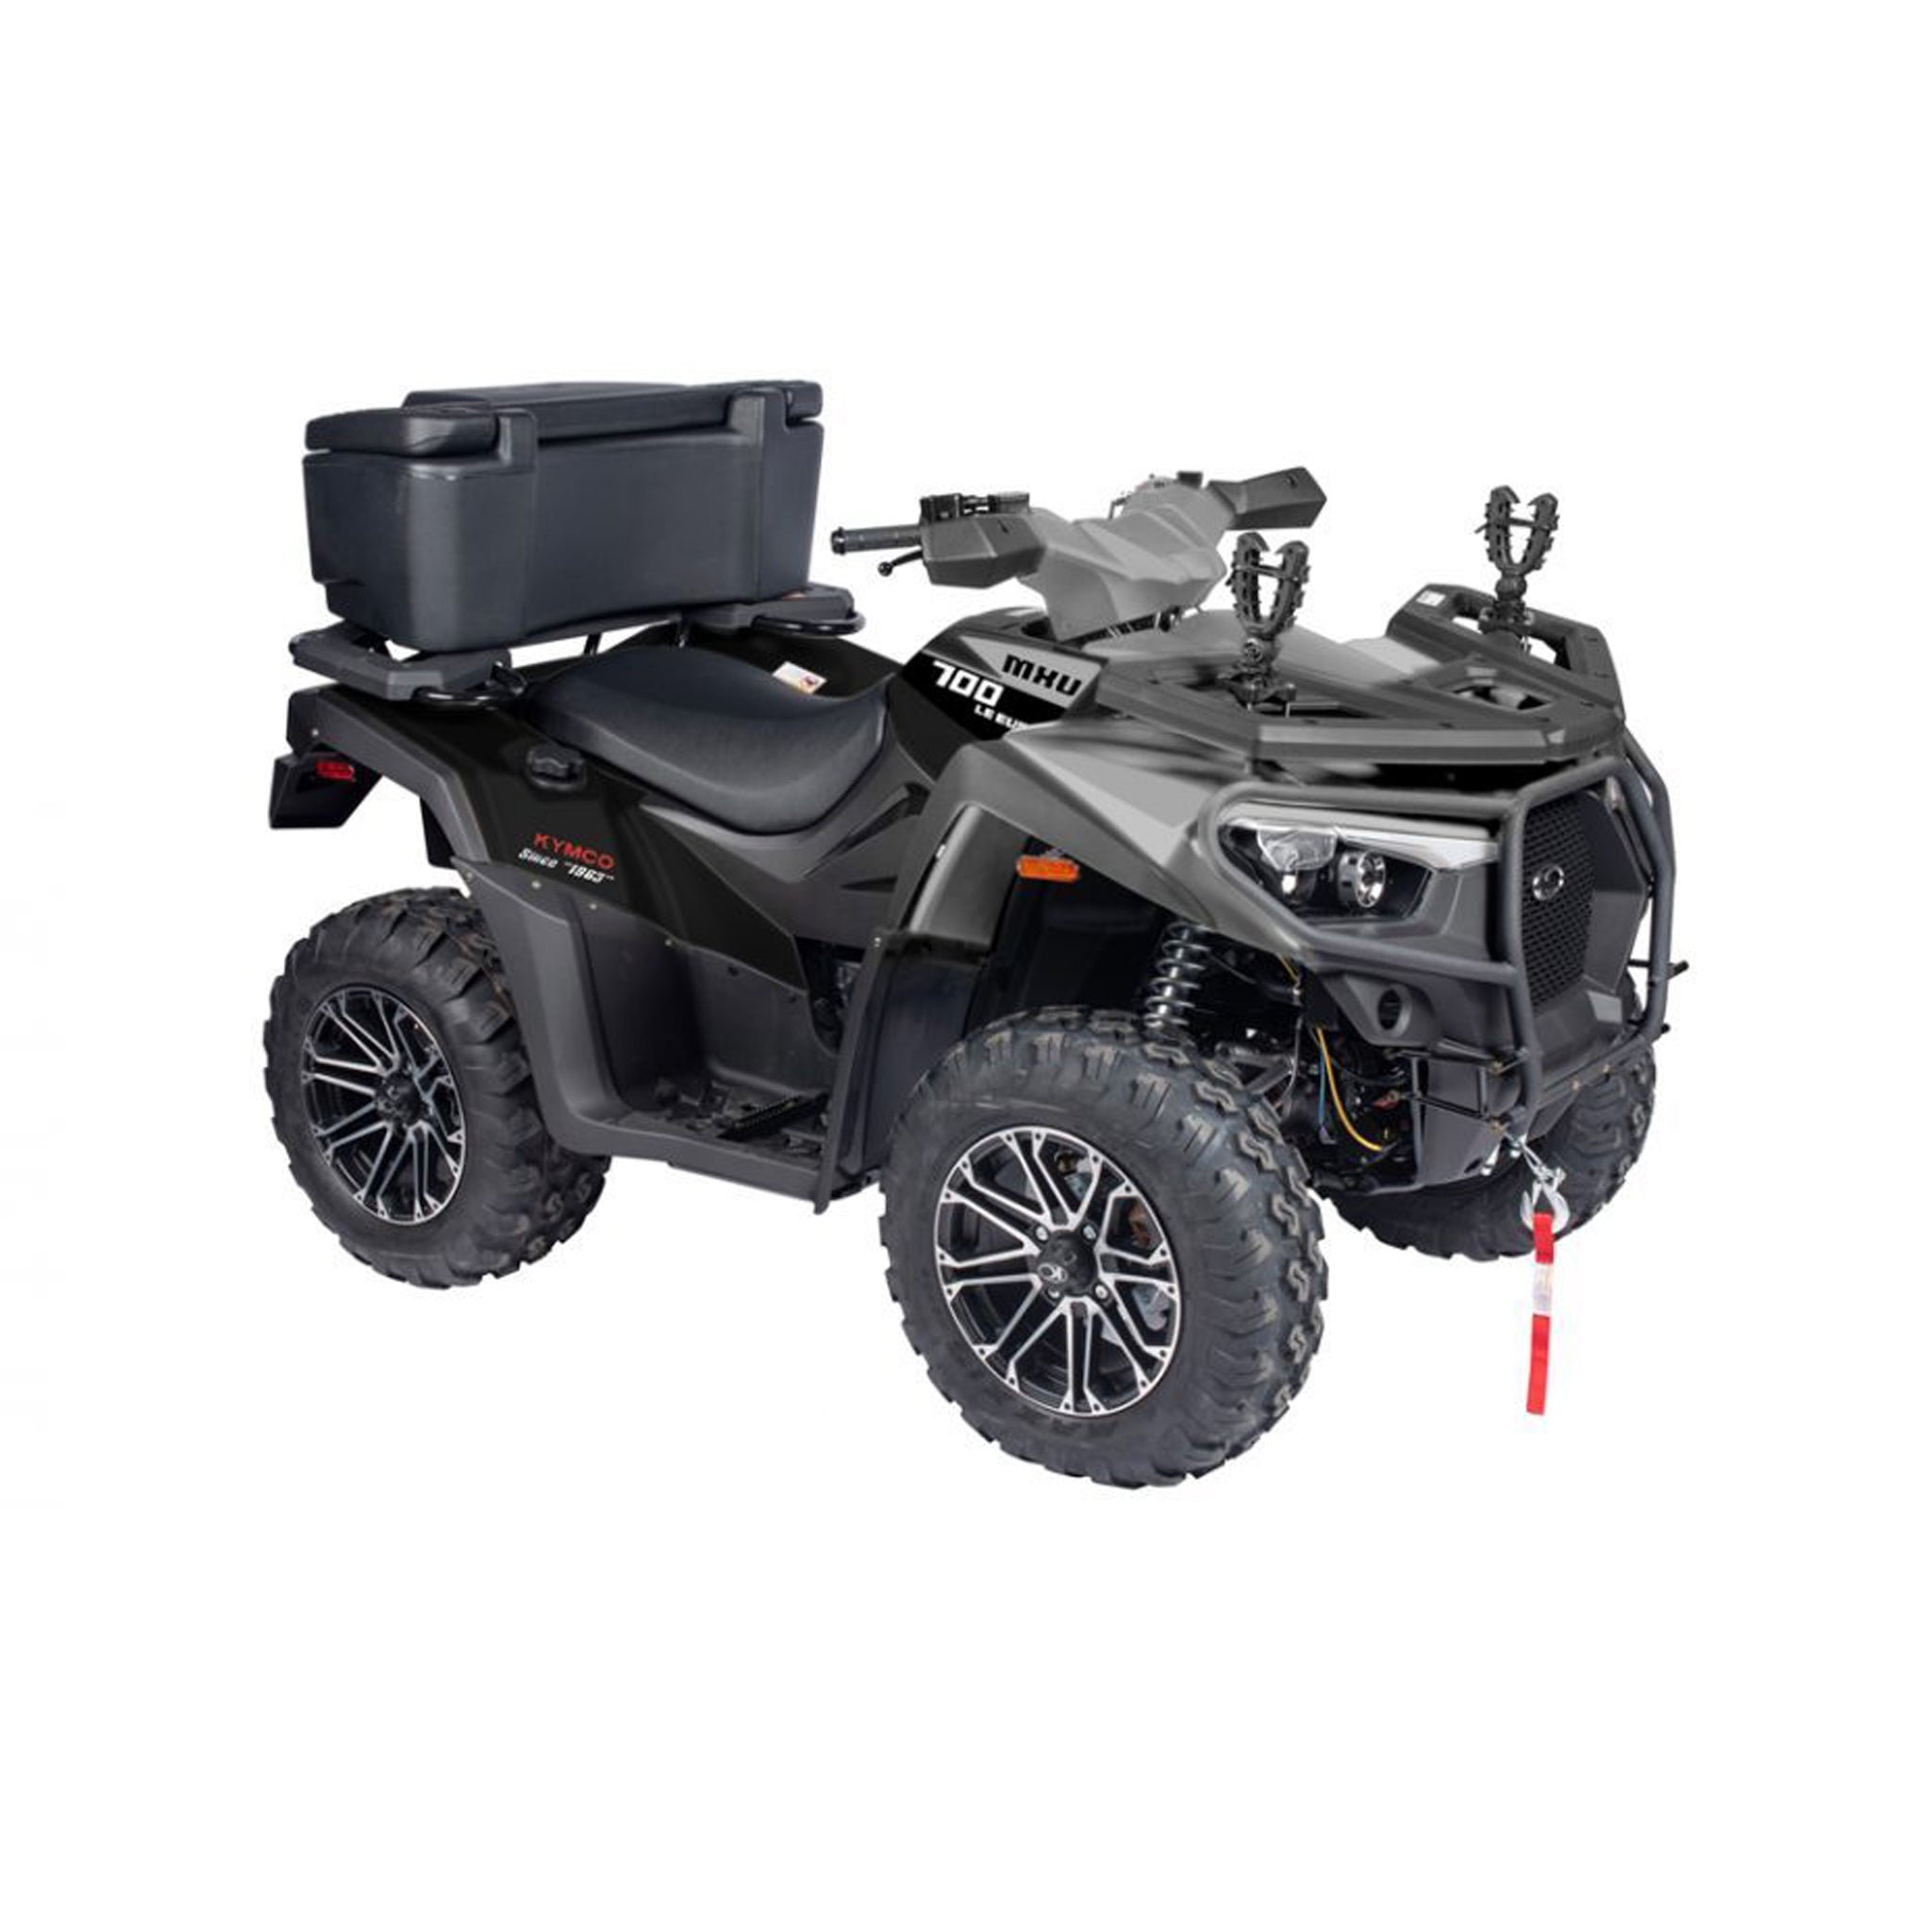 MXU 700i LE EPS HUNTER EURO Kymco